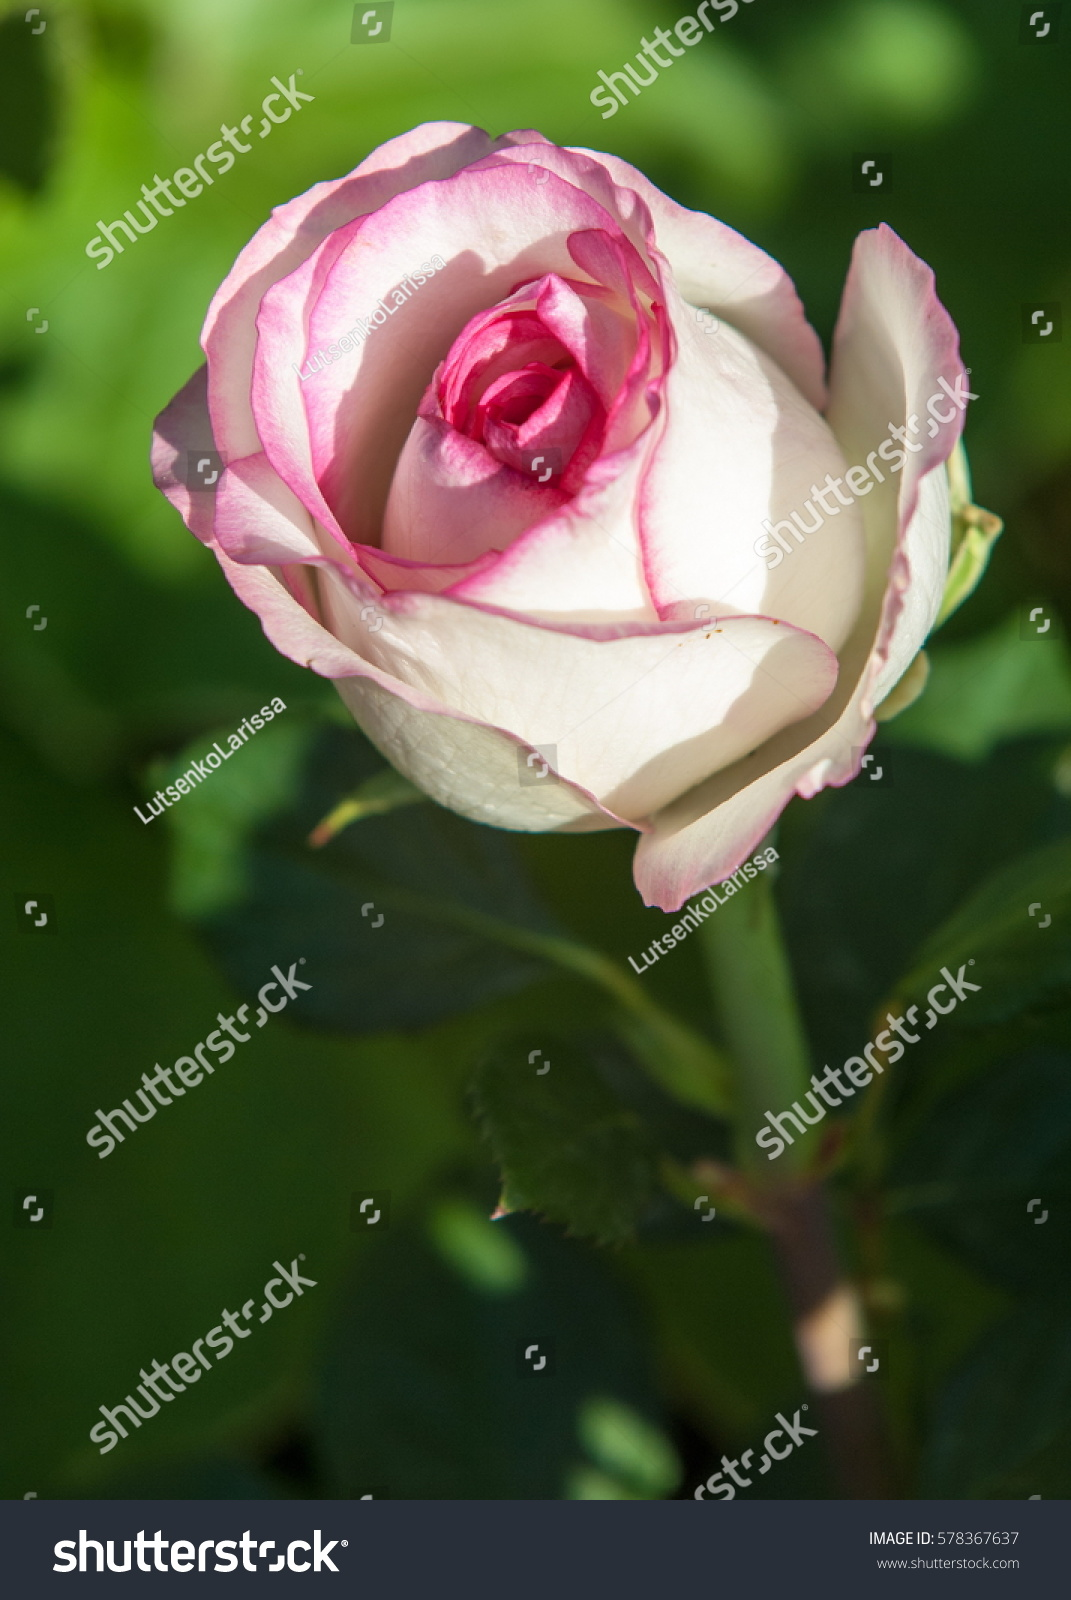 Texture Pattern Background Roses Plant Beautiful Parks Outdoor Stock Image 578367637